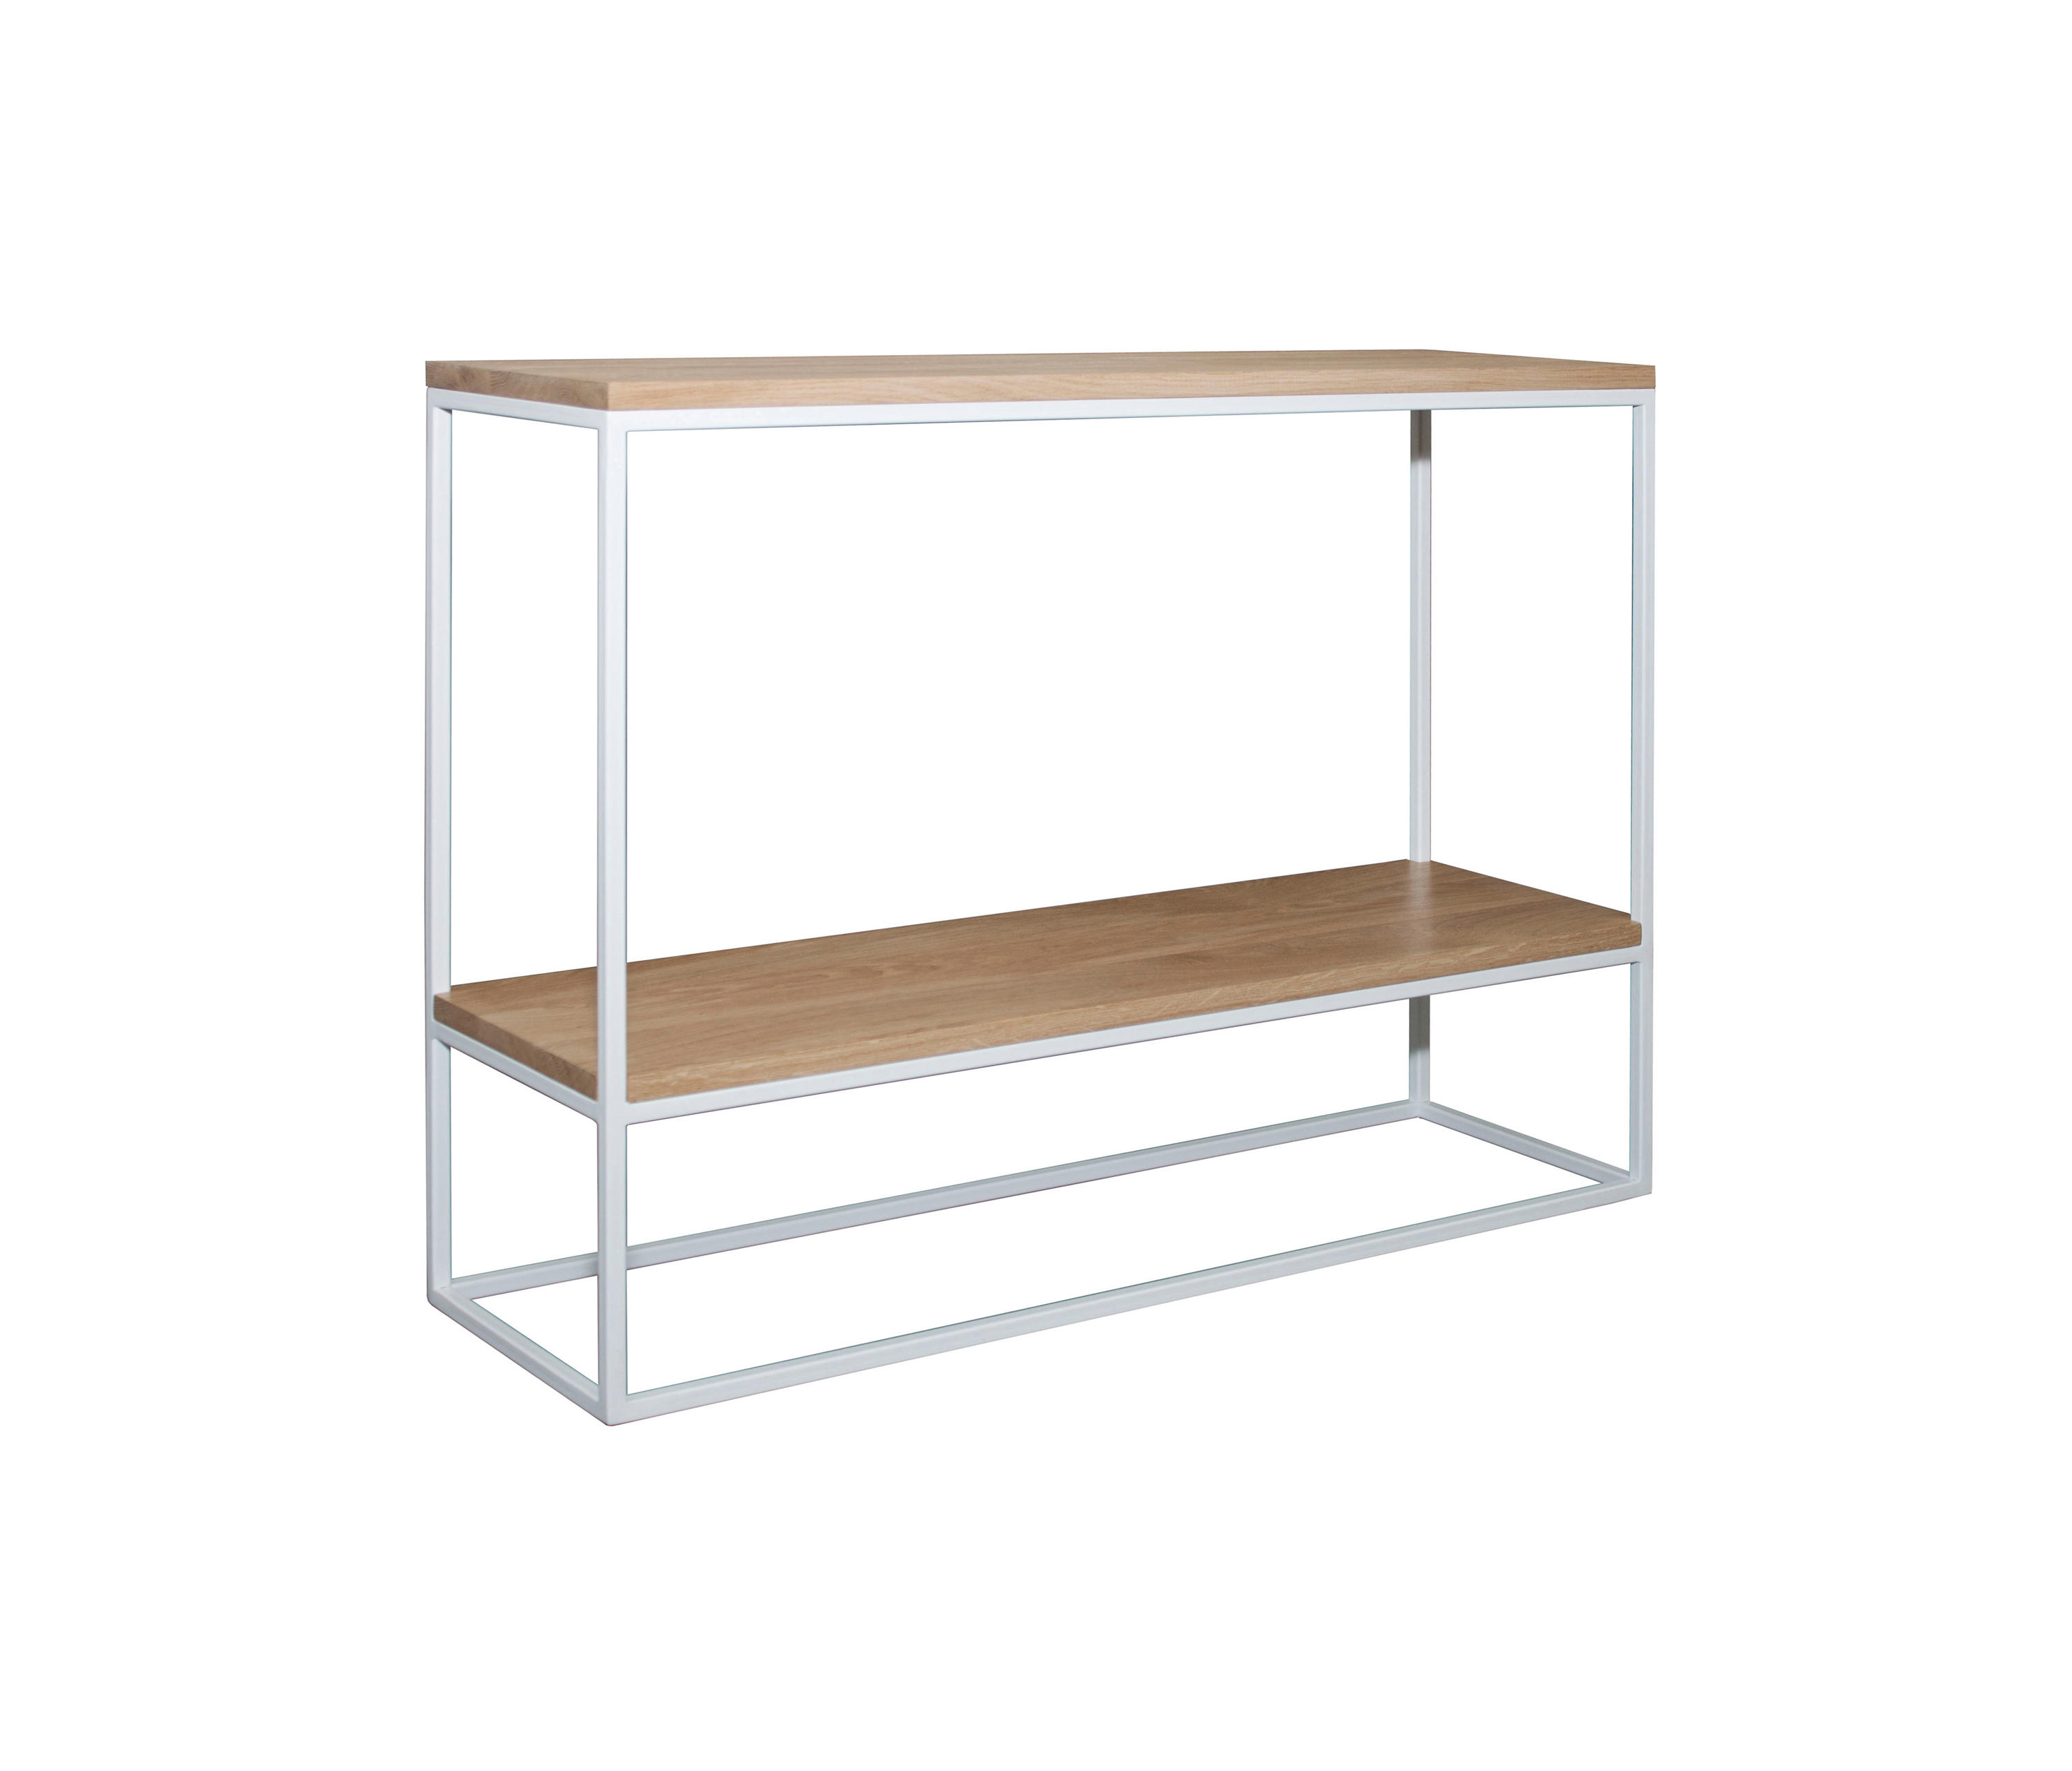 SKINNY OAK TABLAR - Console tables from take me HOME ...